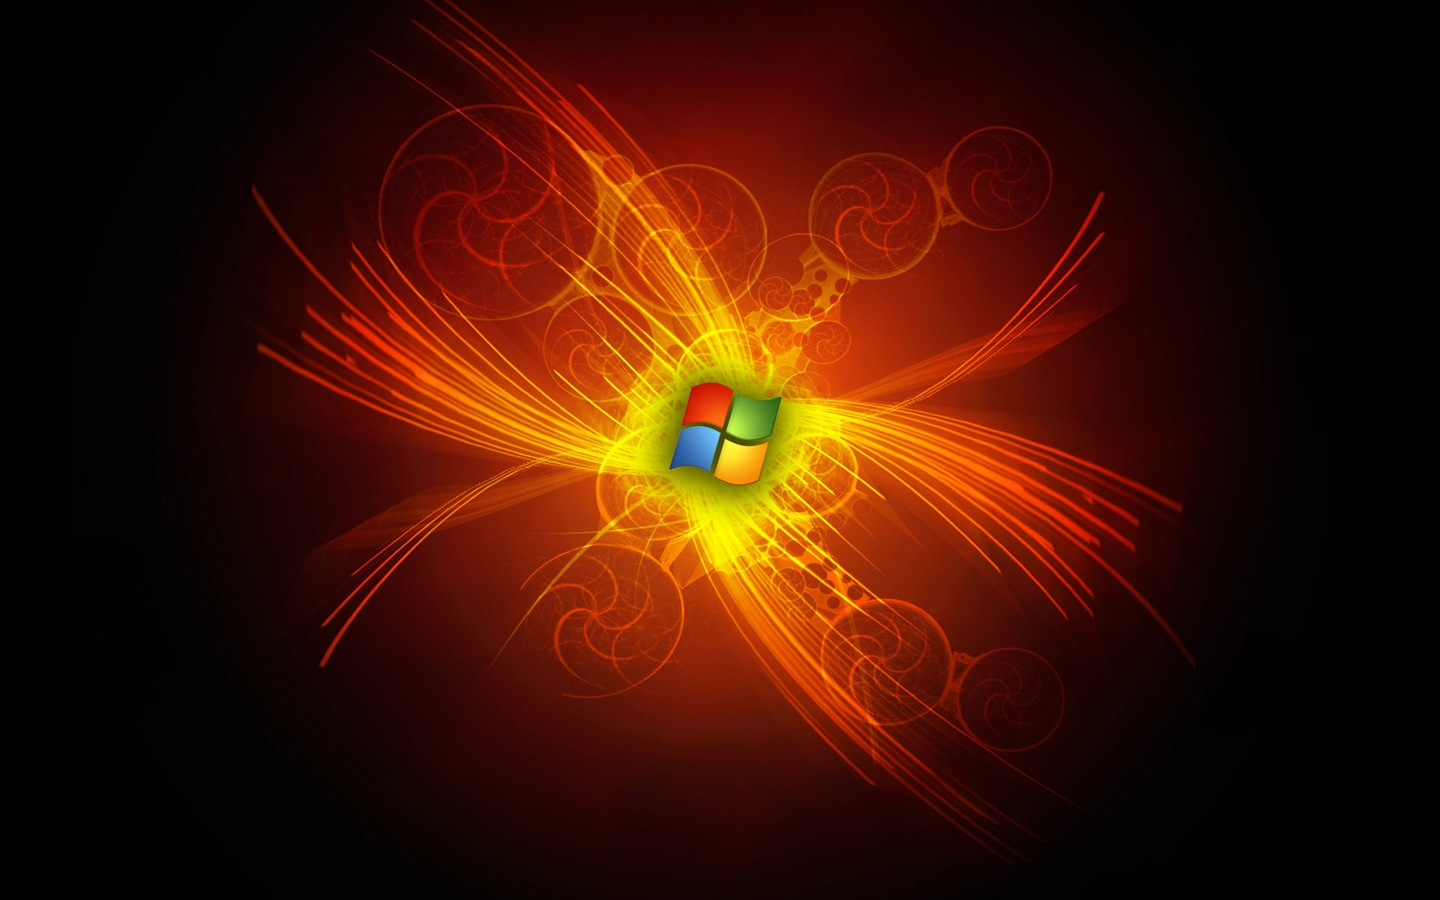 Windows  Desktop Wallpaper Slideshow   1440x900